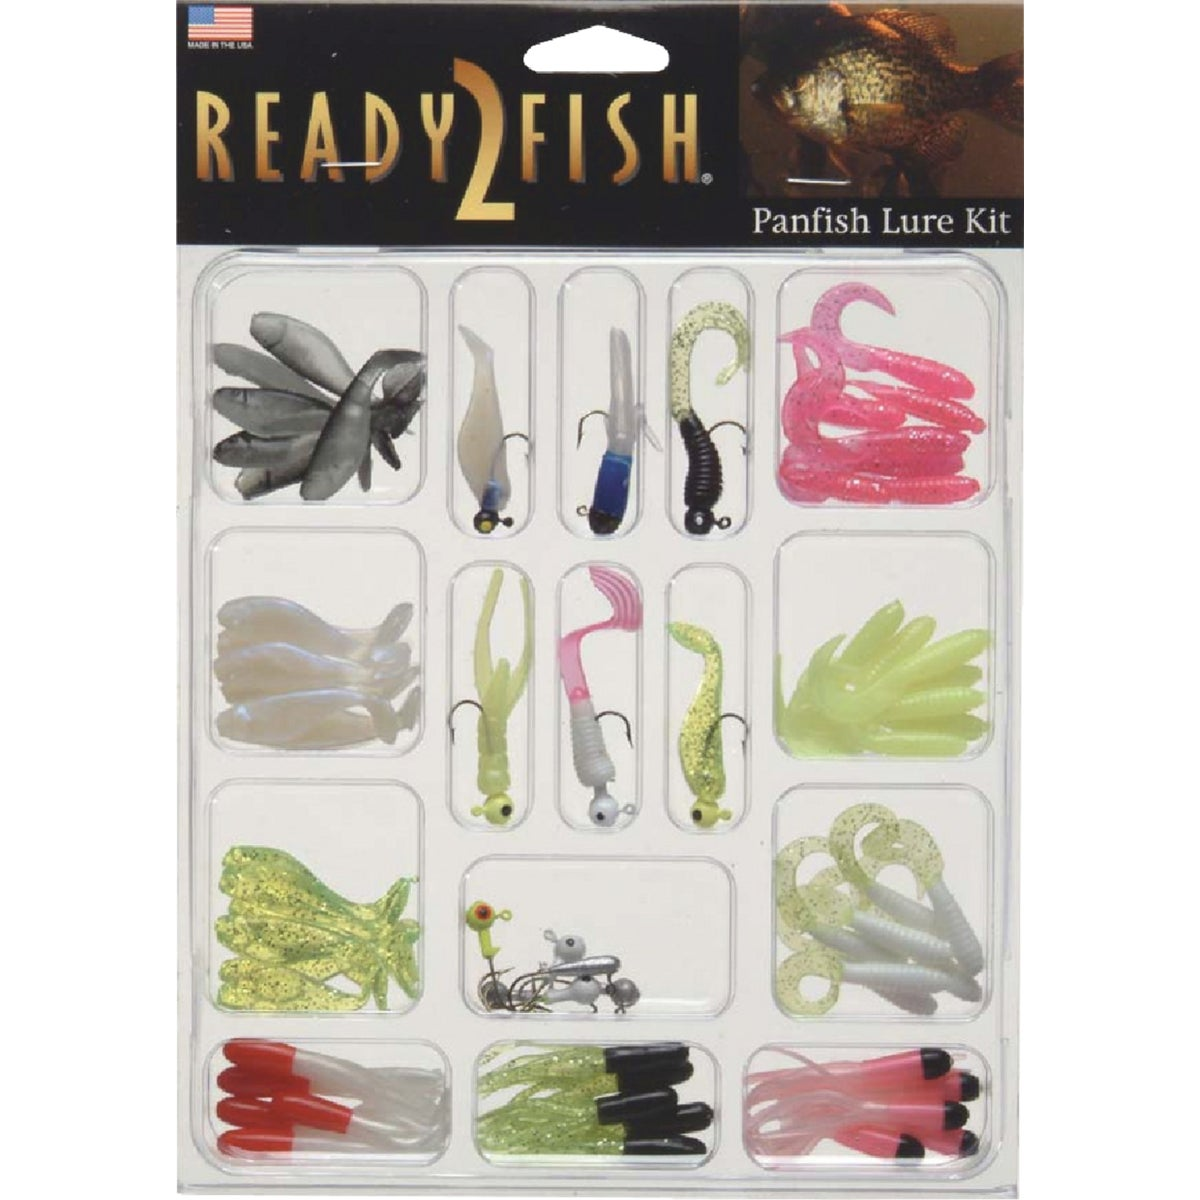 R2F PANFISH LURE KIT - R2FK2-PNFISH by South Bend Sptg Good